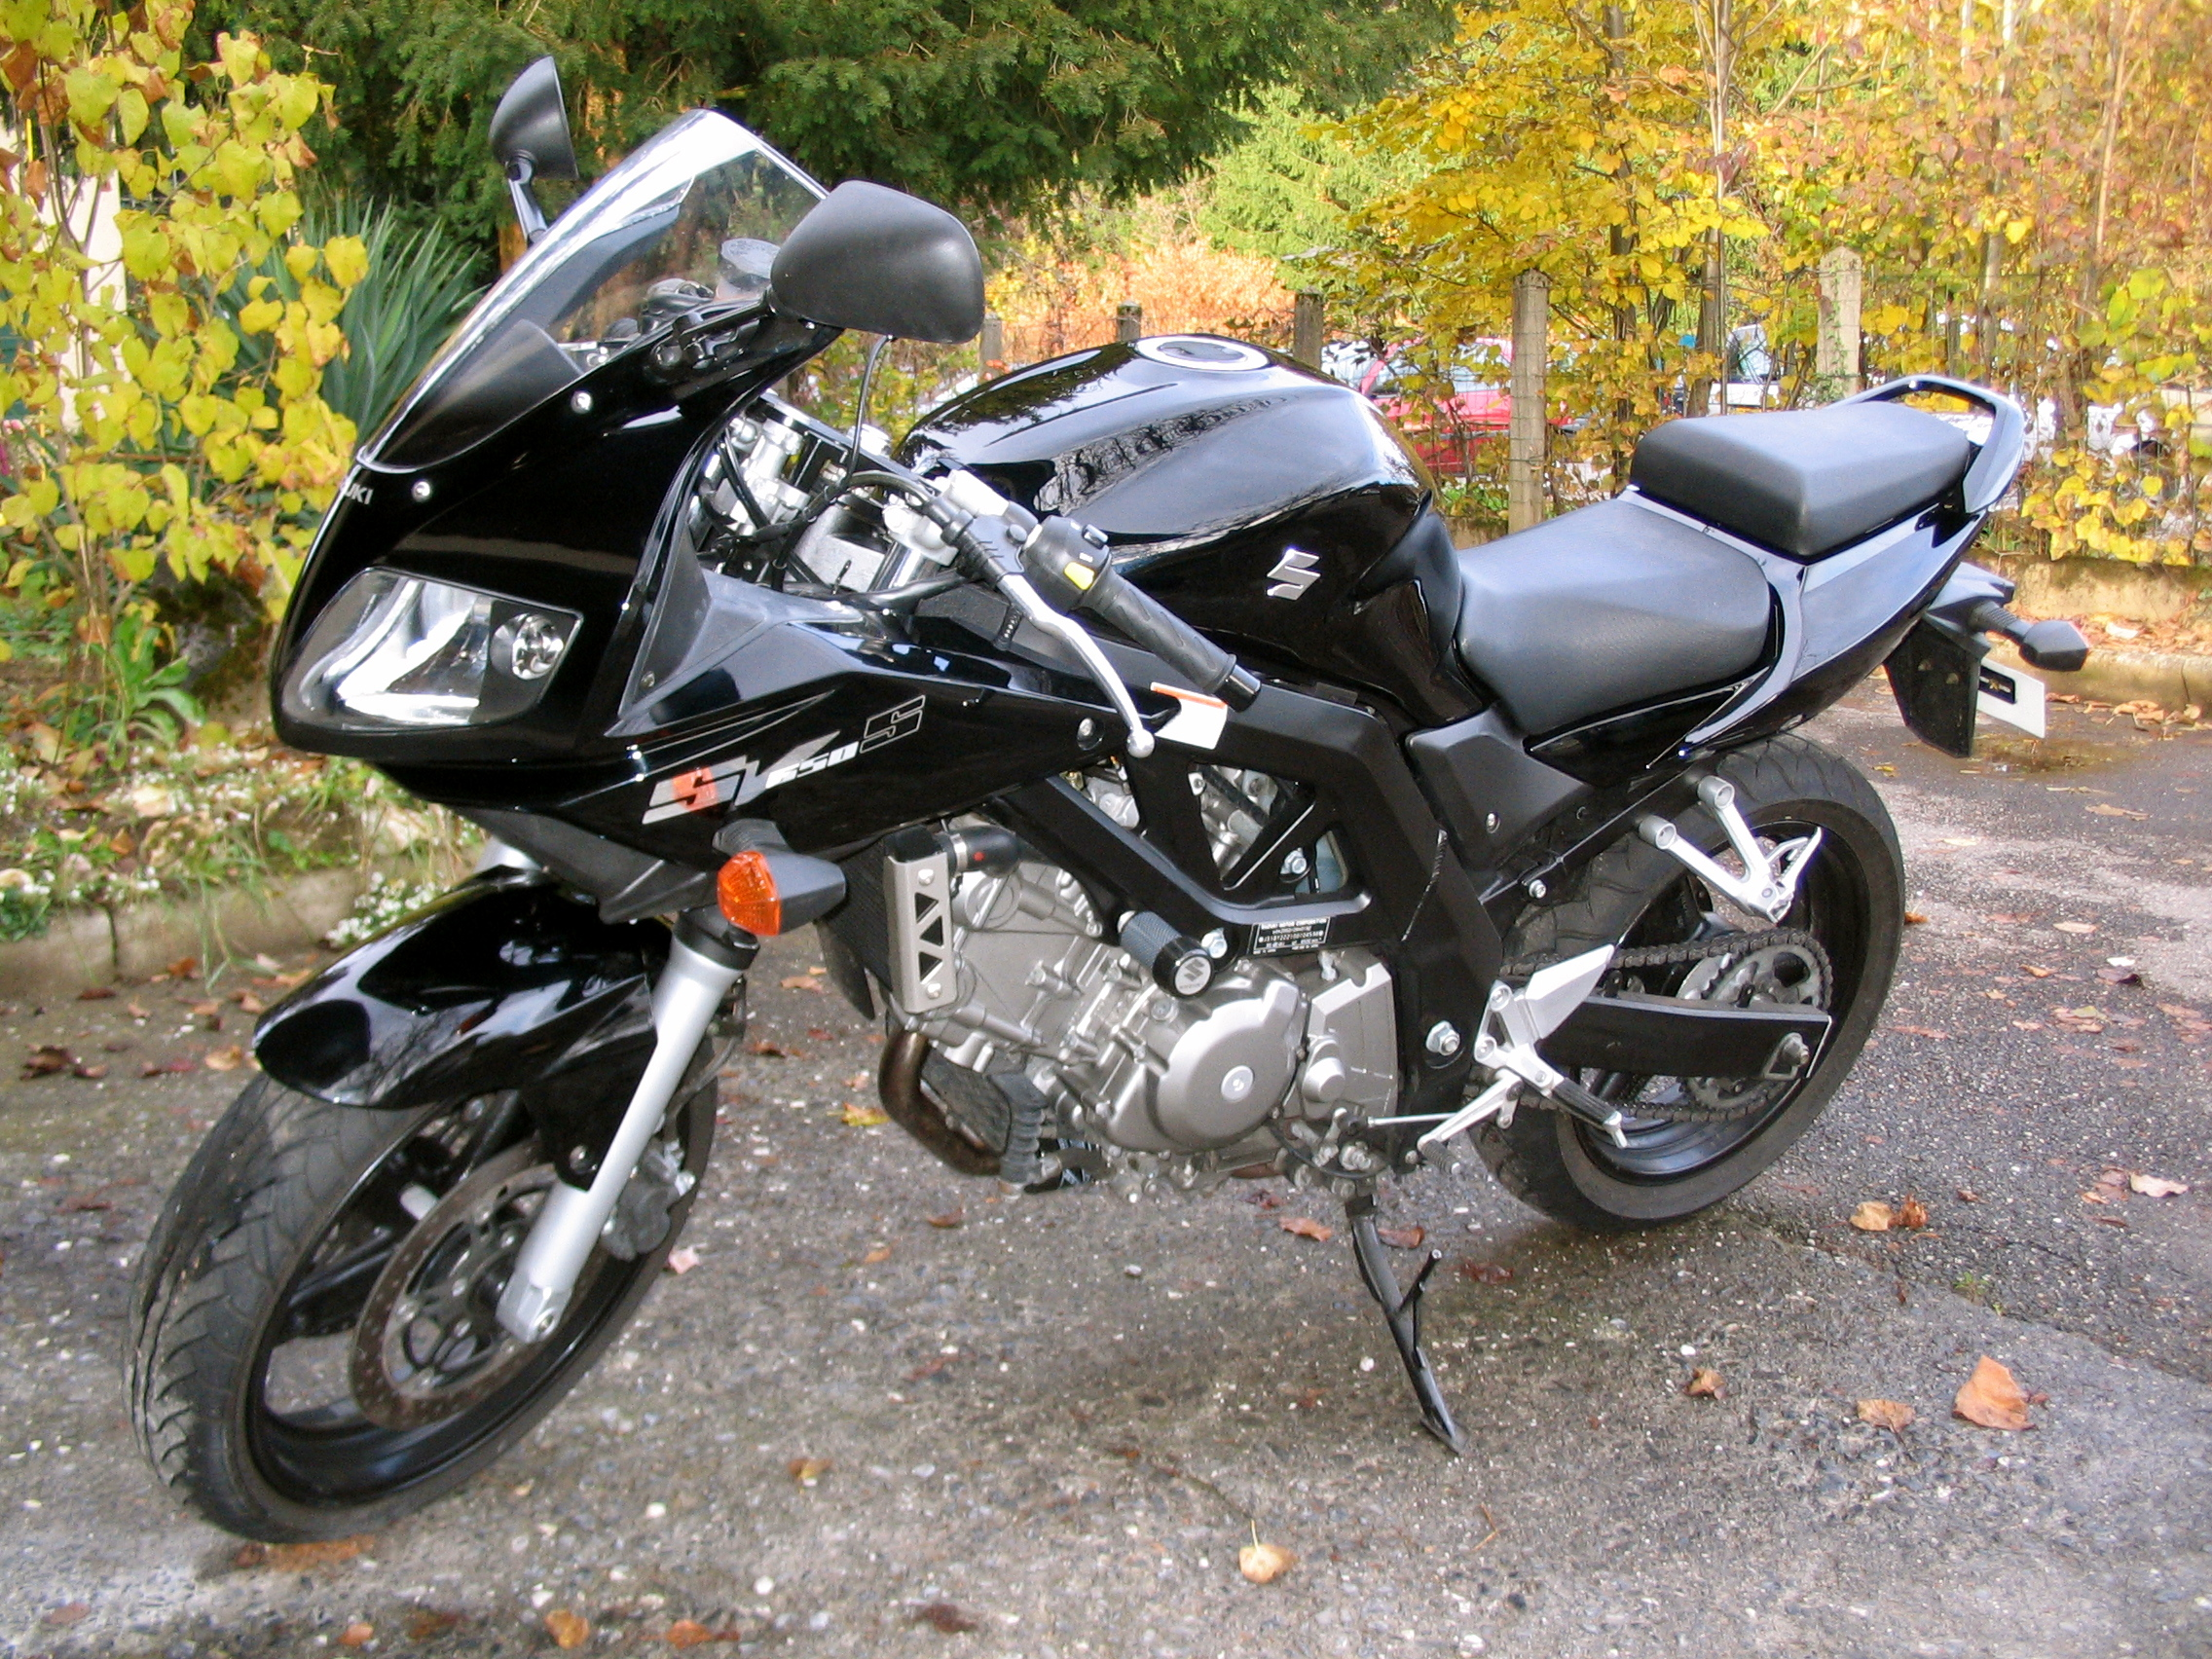 Suzuki sv650s photo - 1